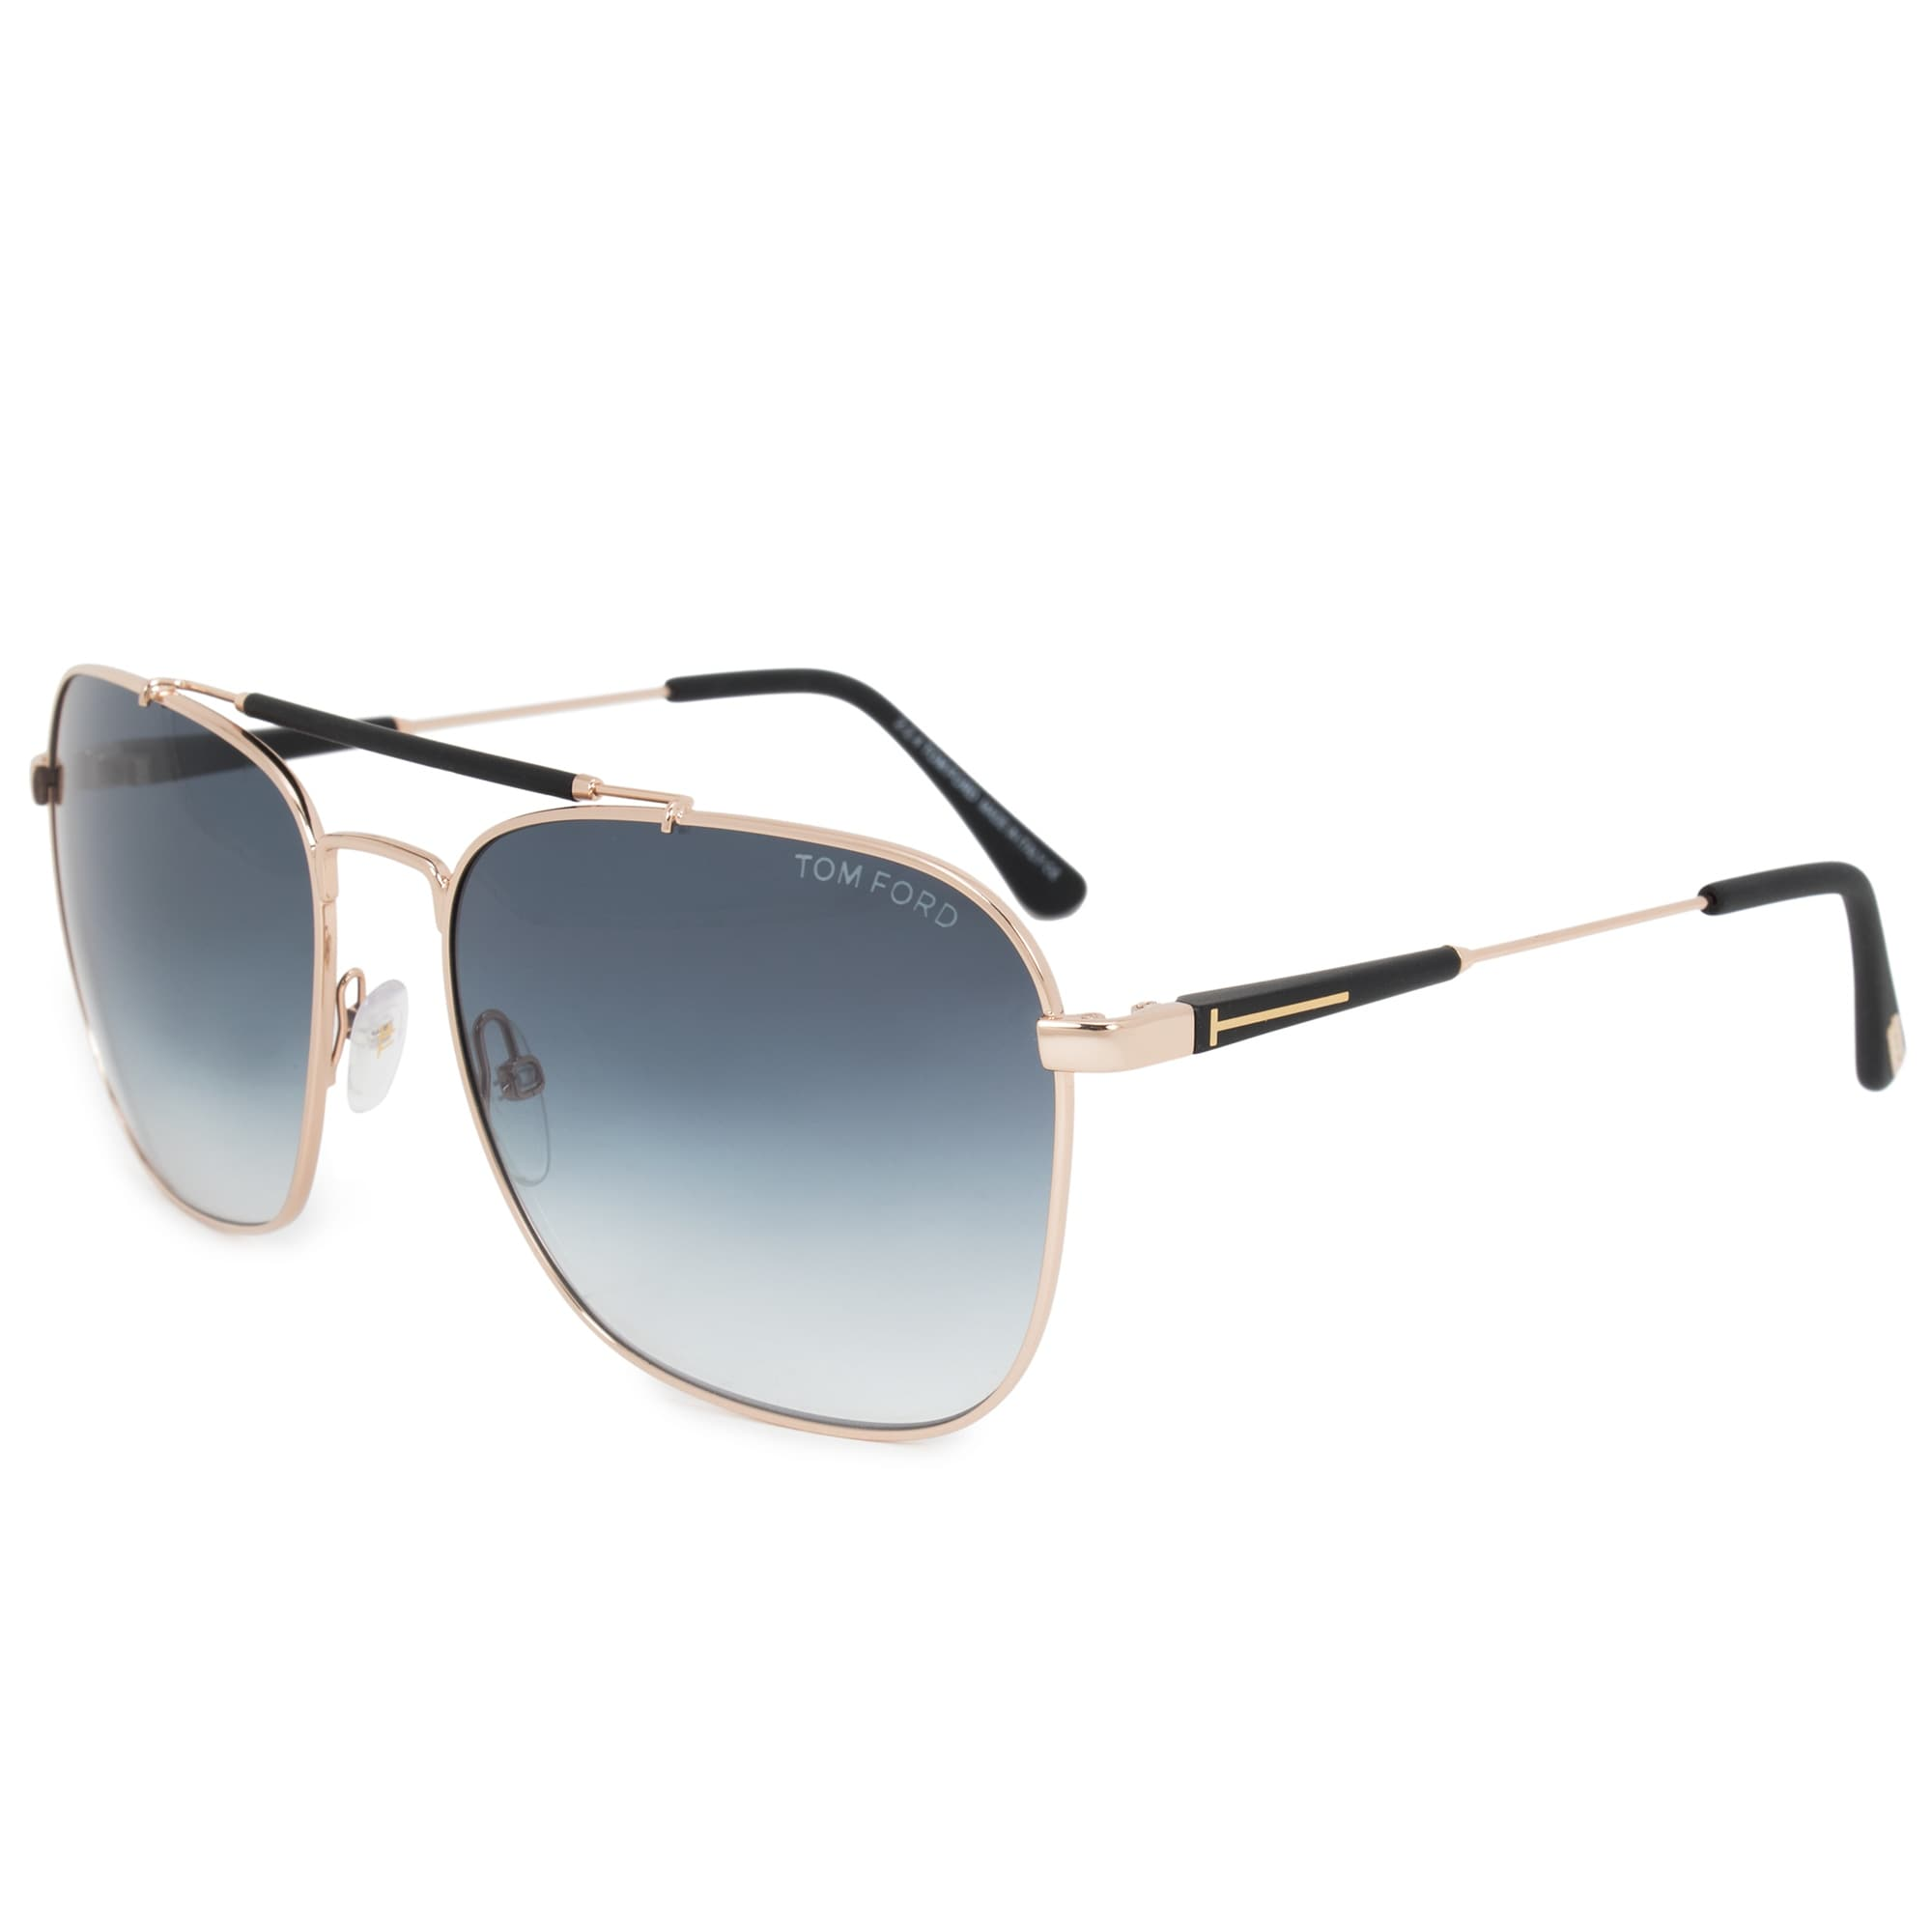 ad44ce4a47 Shop Tom Ford Edward Aviator Sunglasses FT0377 28W 60 - Free Shipping Today  - Overstock - 25494020